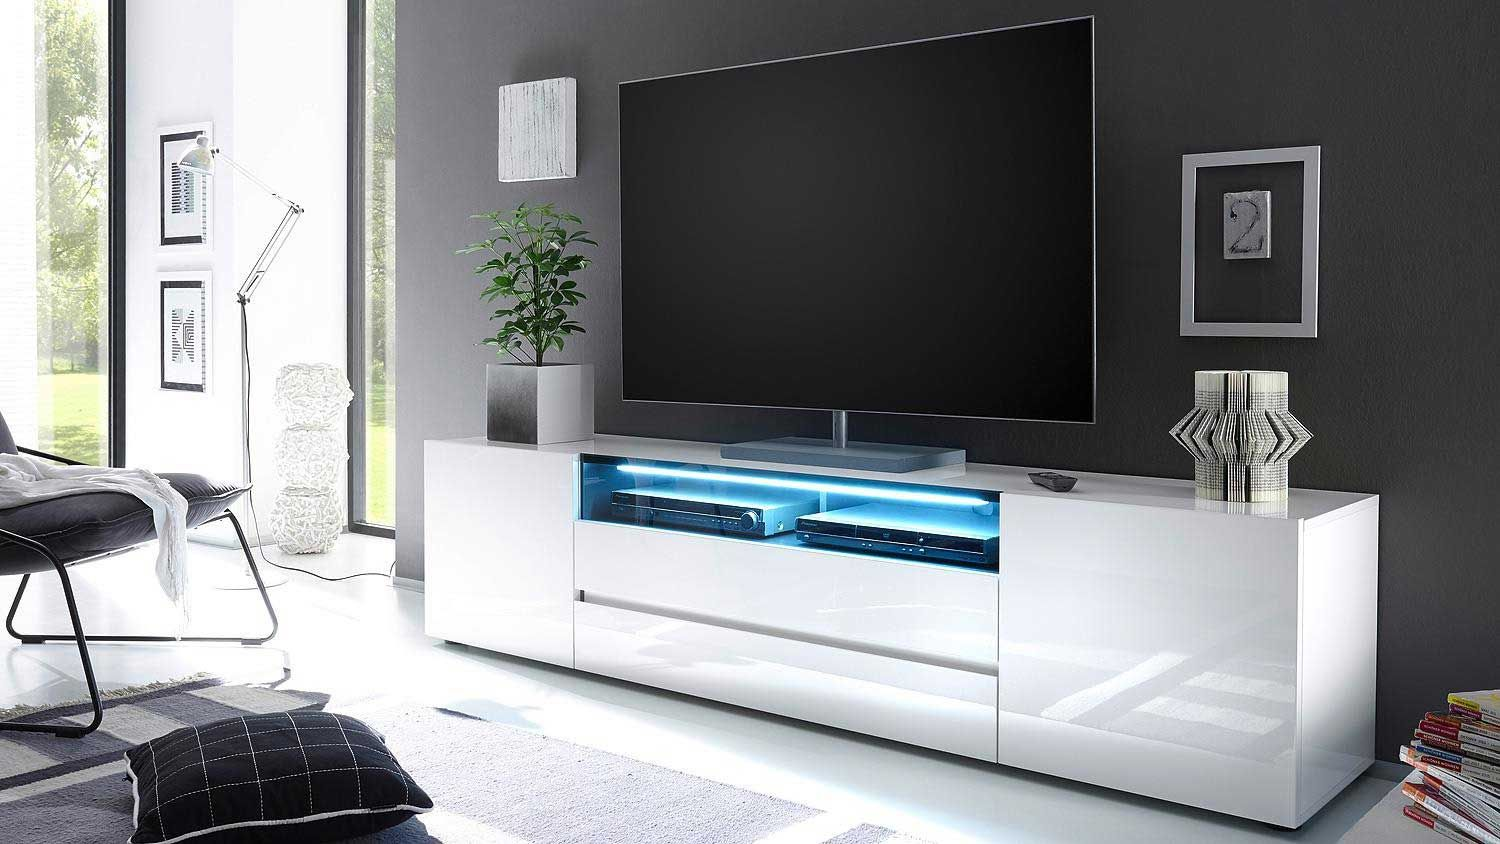 Meuble Hifi Tv Design Meuble D Angle Tv Moderne Maisonjoffrois Meuble Tv Moderne En 2020 Meuble Tv Moderne Deco Meuble Tv Decoration De Maison Contemporaine